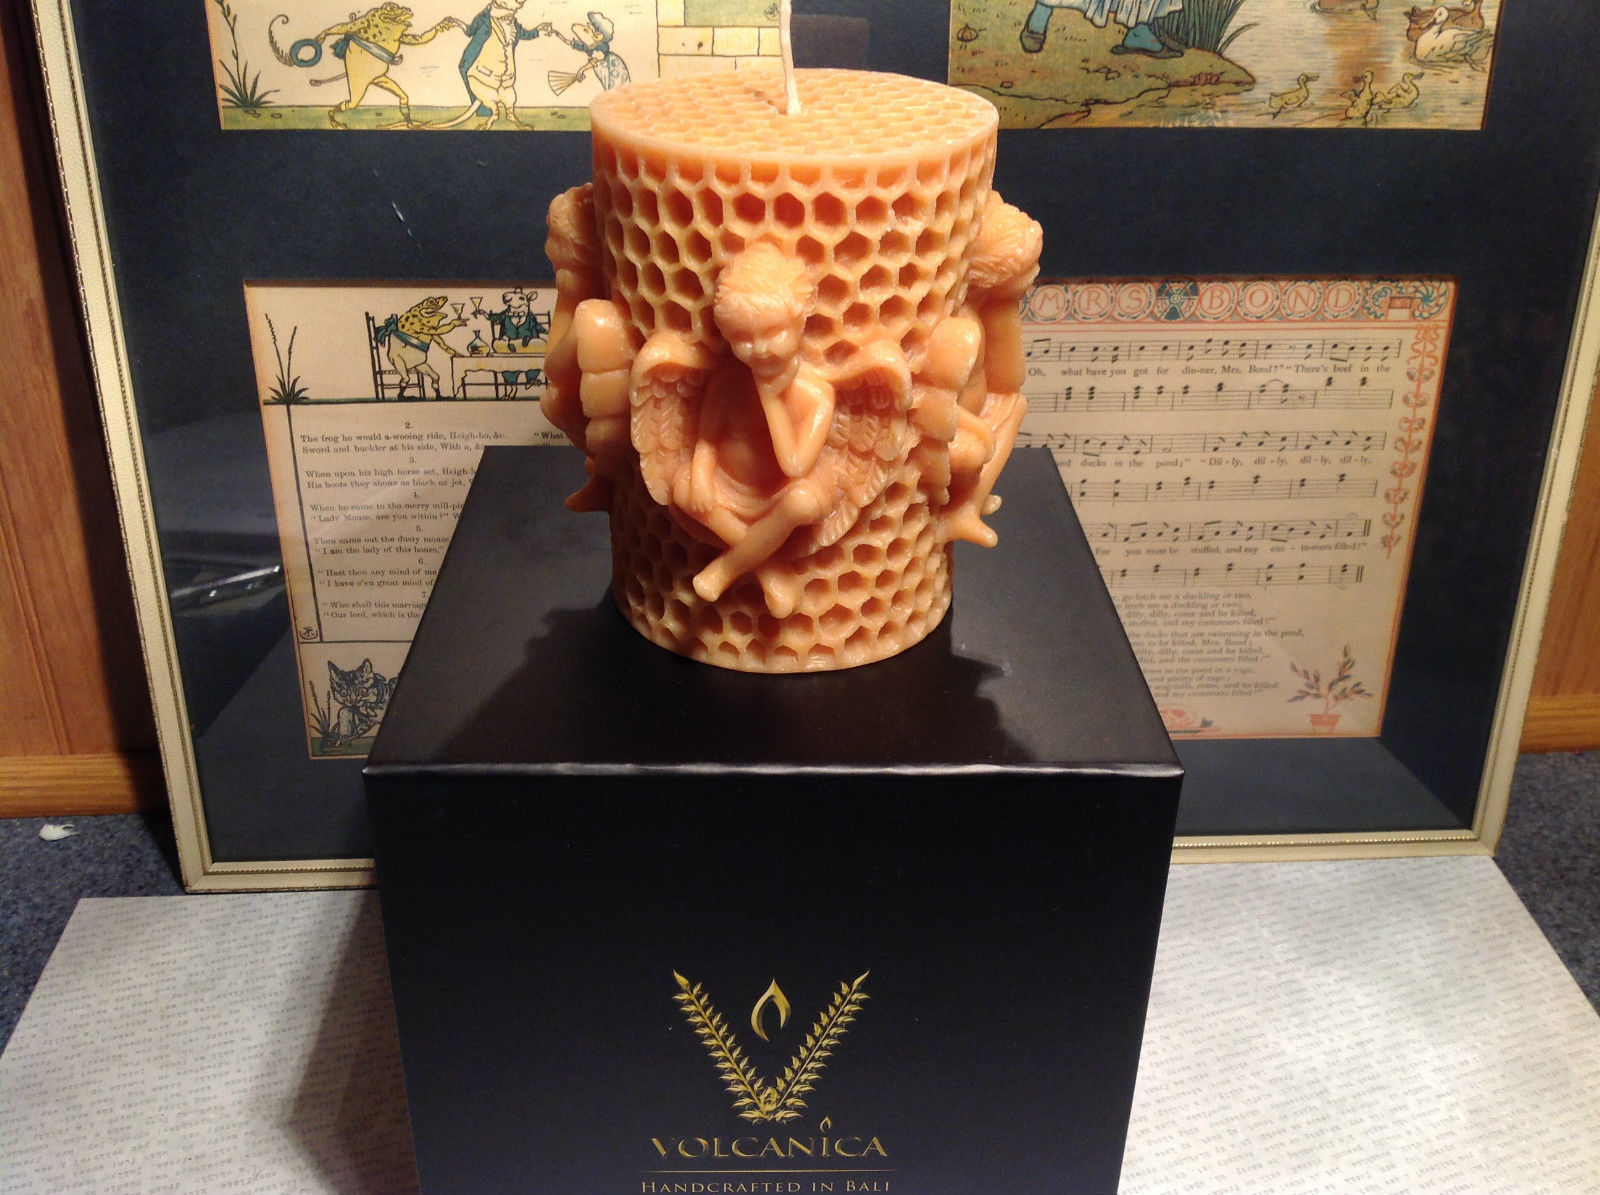 Honeycomb Cherub Volcanica Candle Hand made Bali Made with Beeswax and Palm Wax